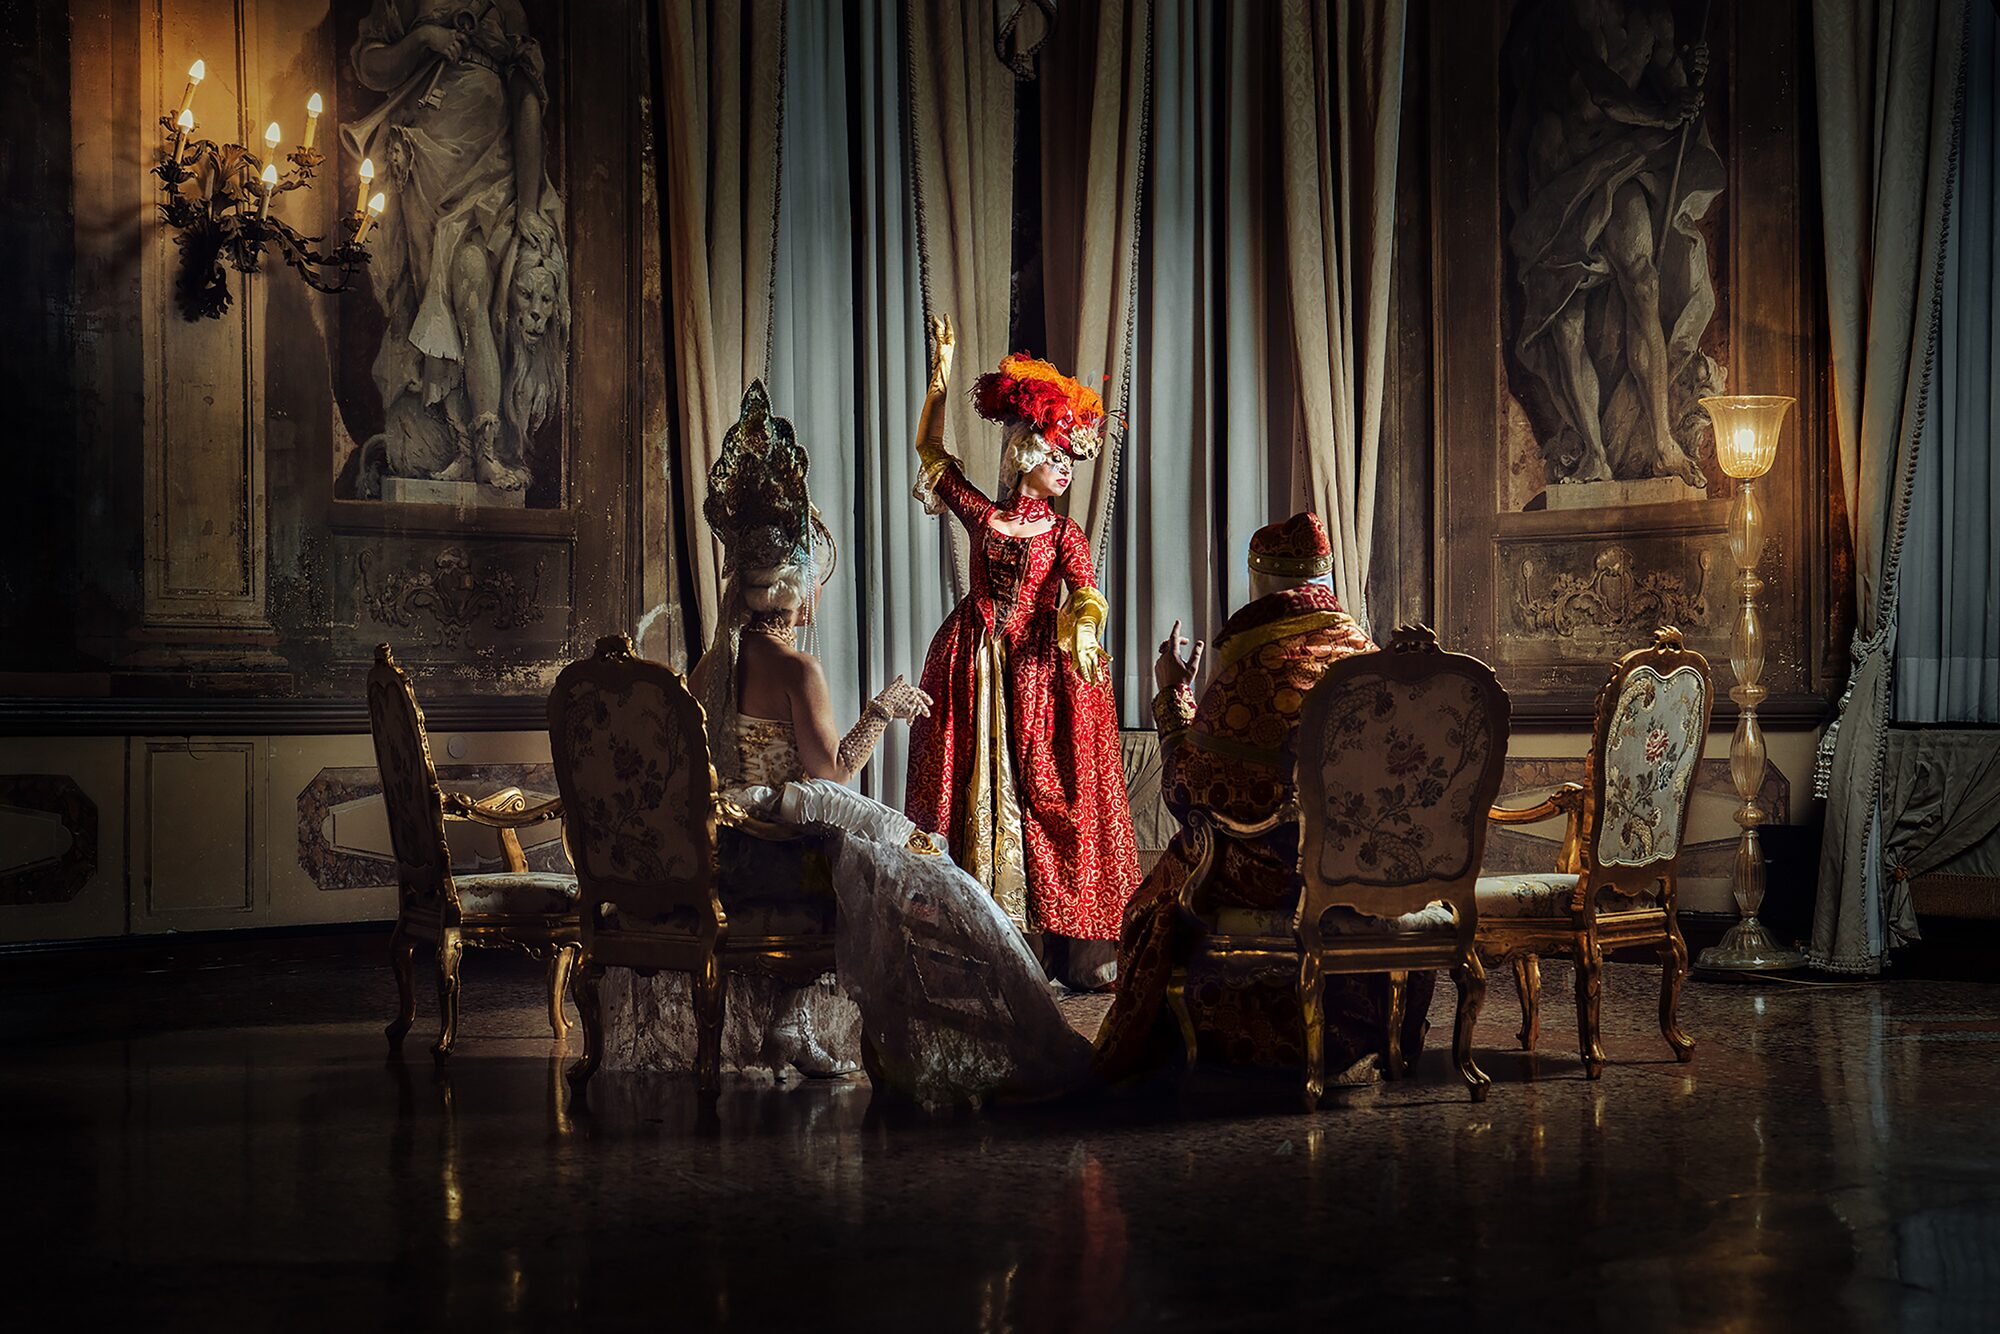 mathias kniepeiss sony alpha 7RIII model wearing a mask dressed in red poses in a grand room